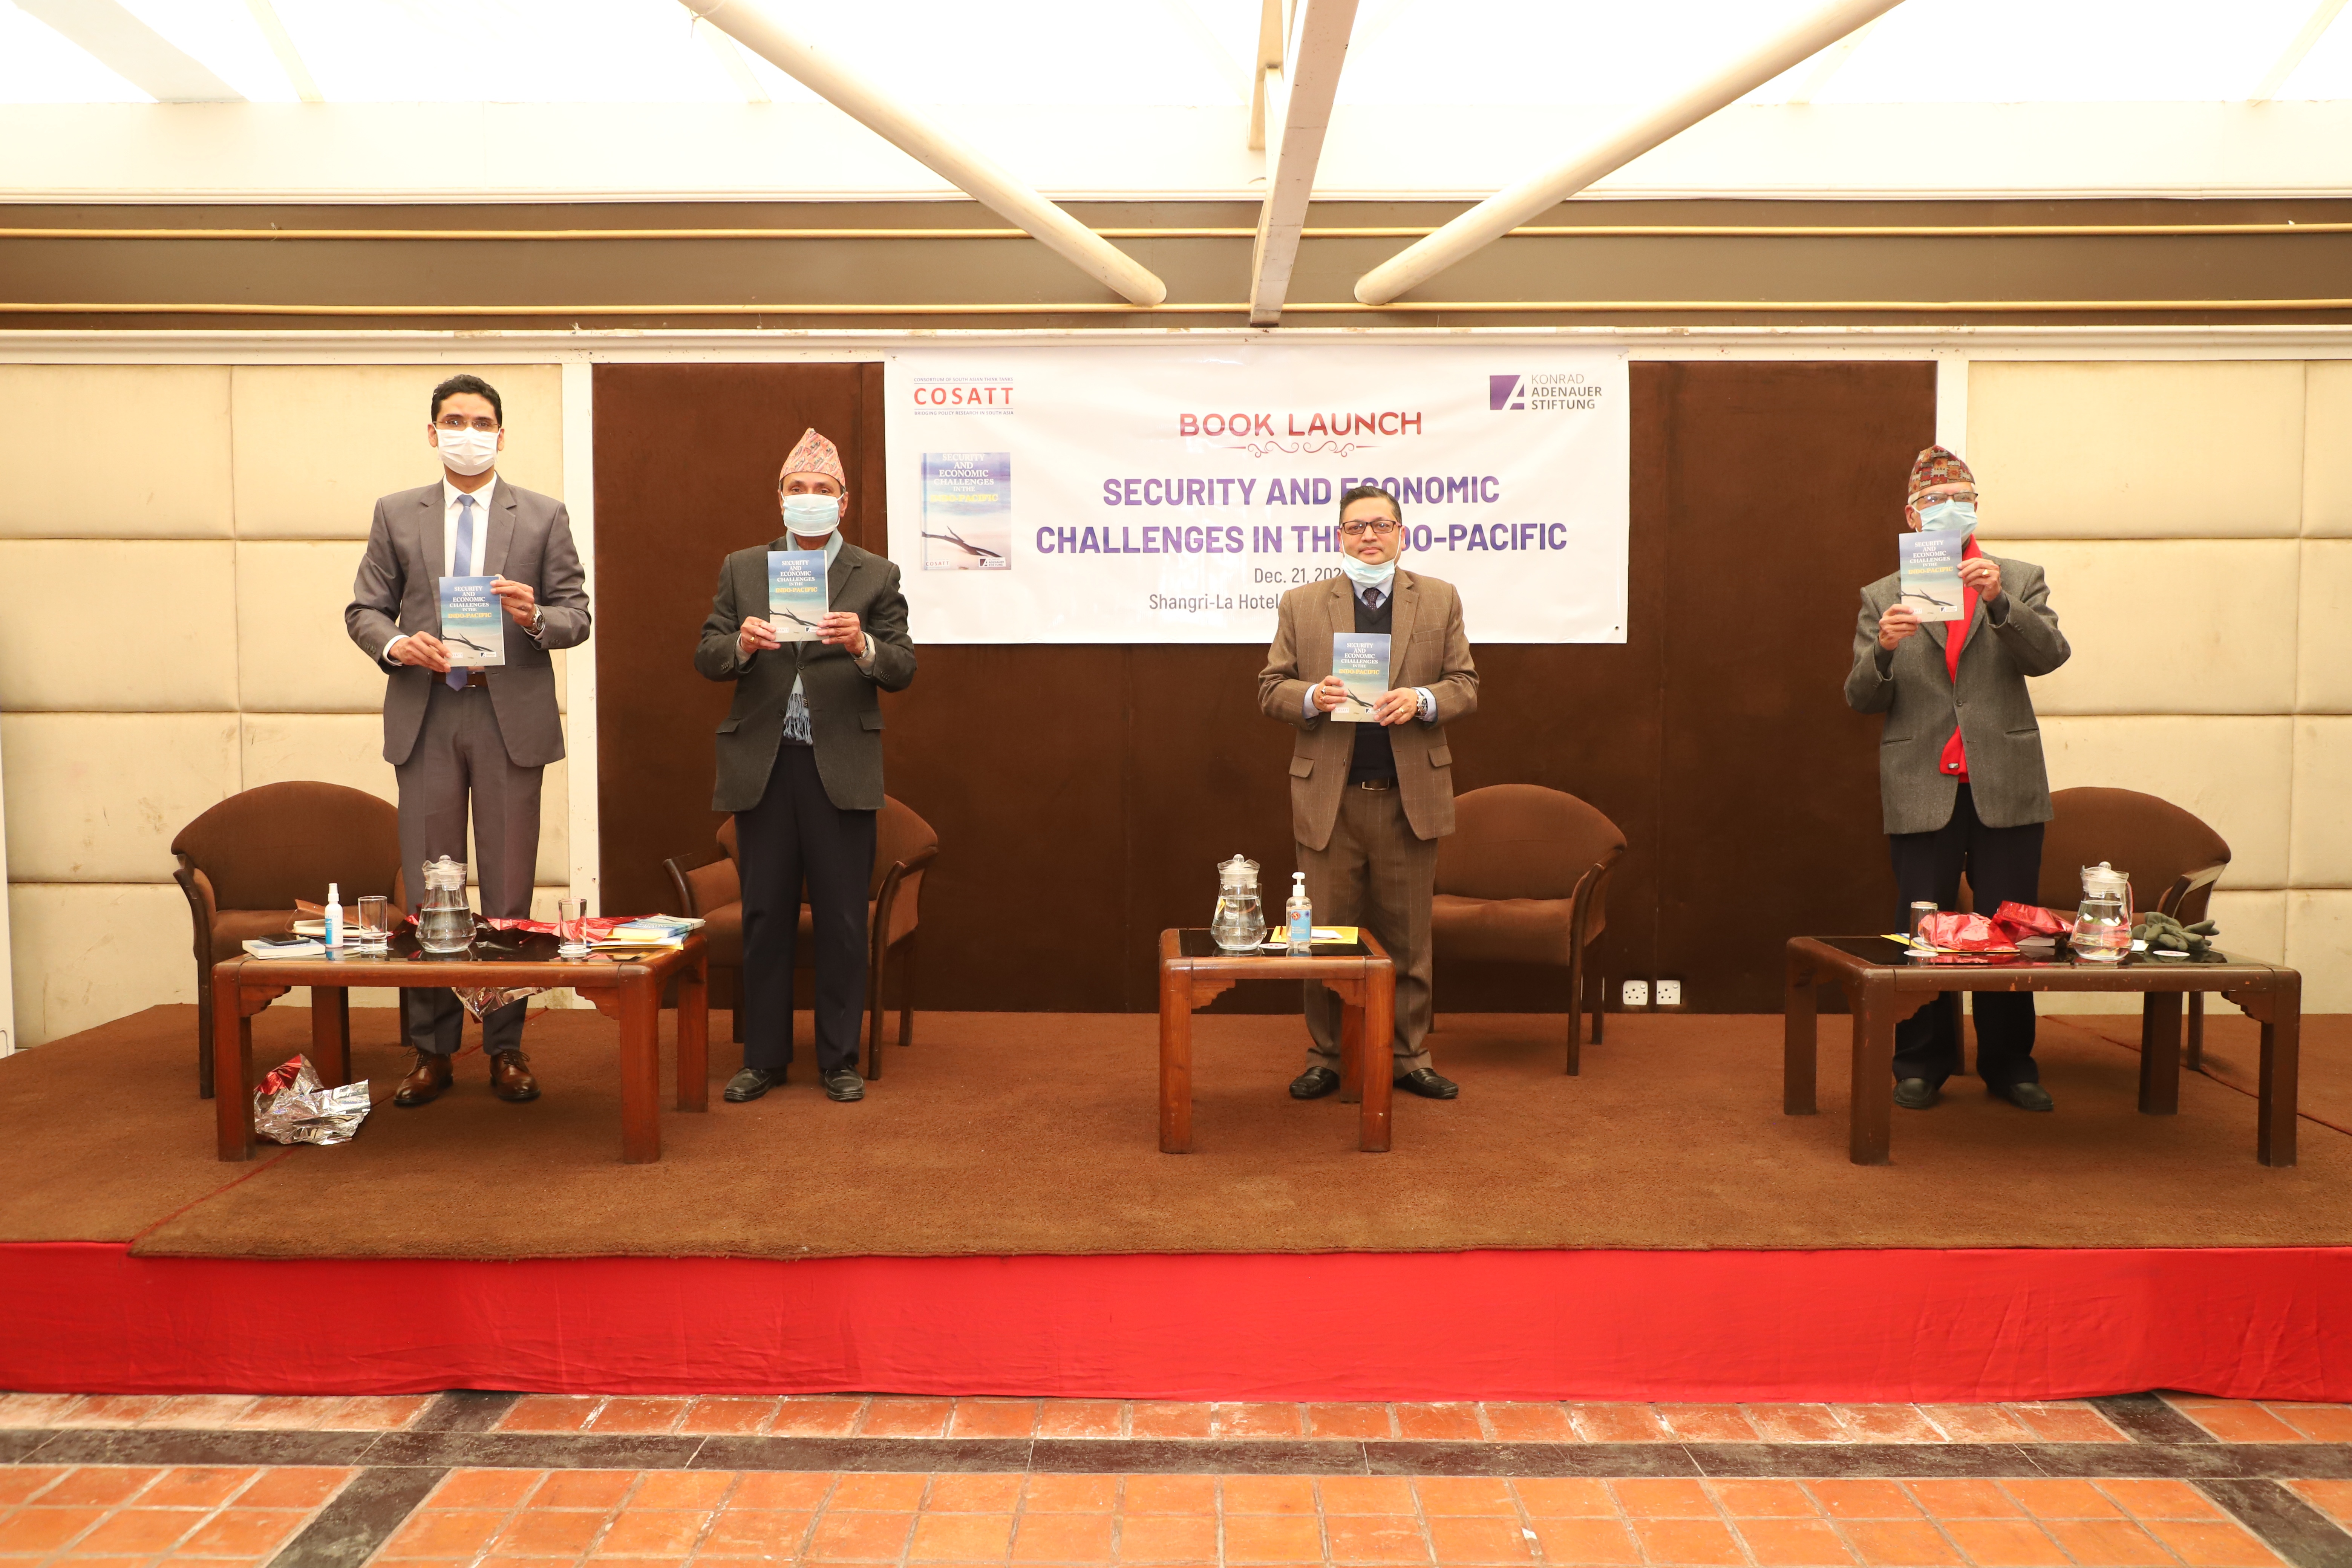 COSATT Book Security and Economic Challenges in the Indo-Pacific